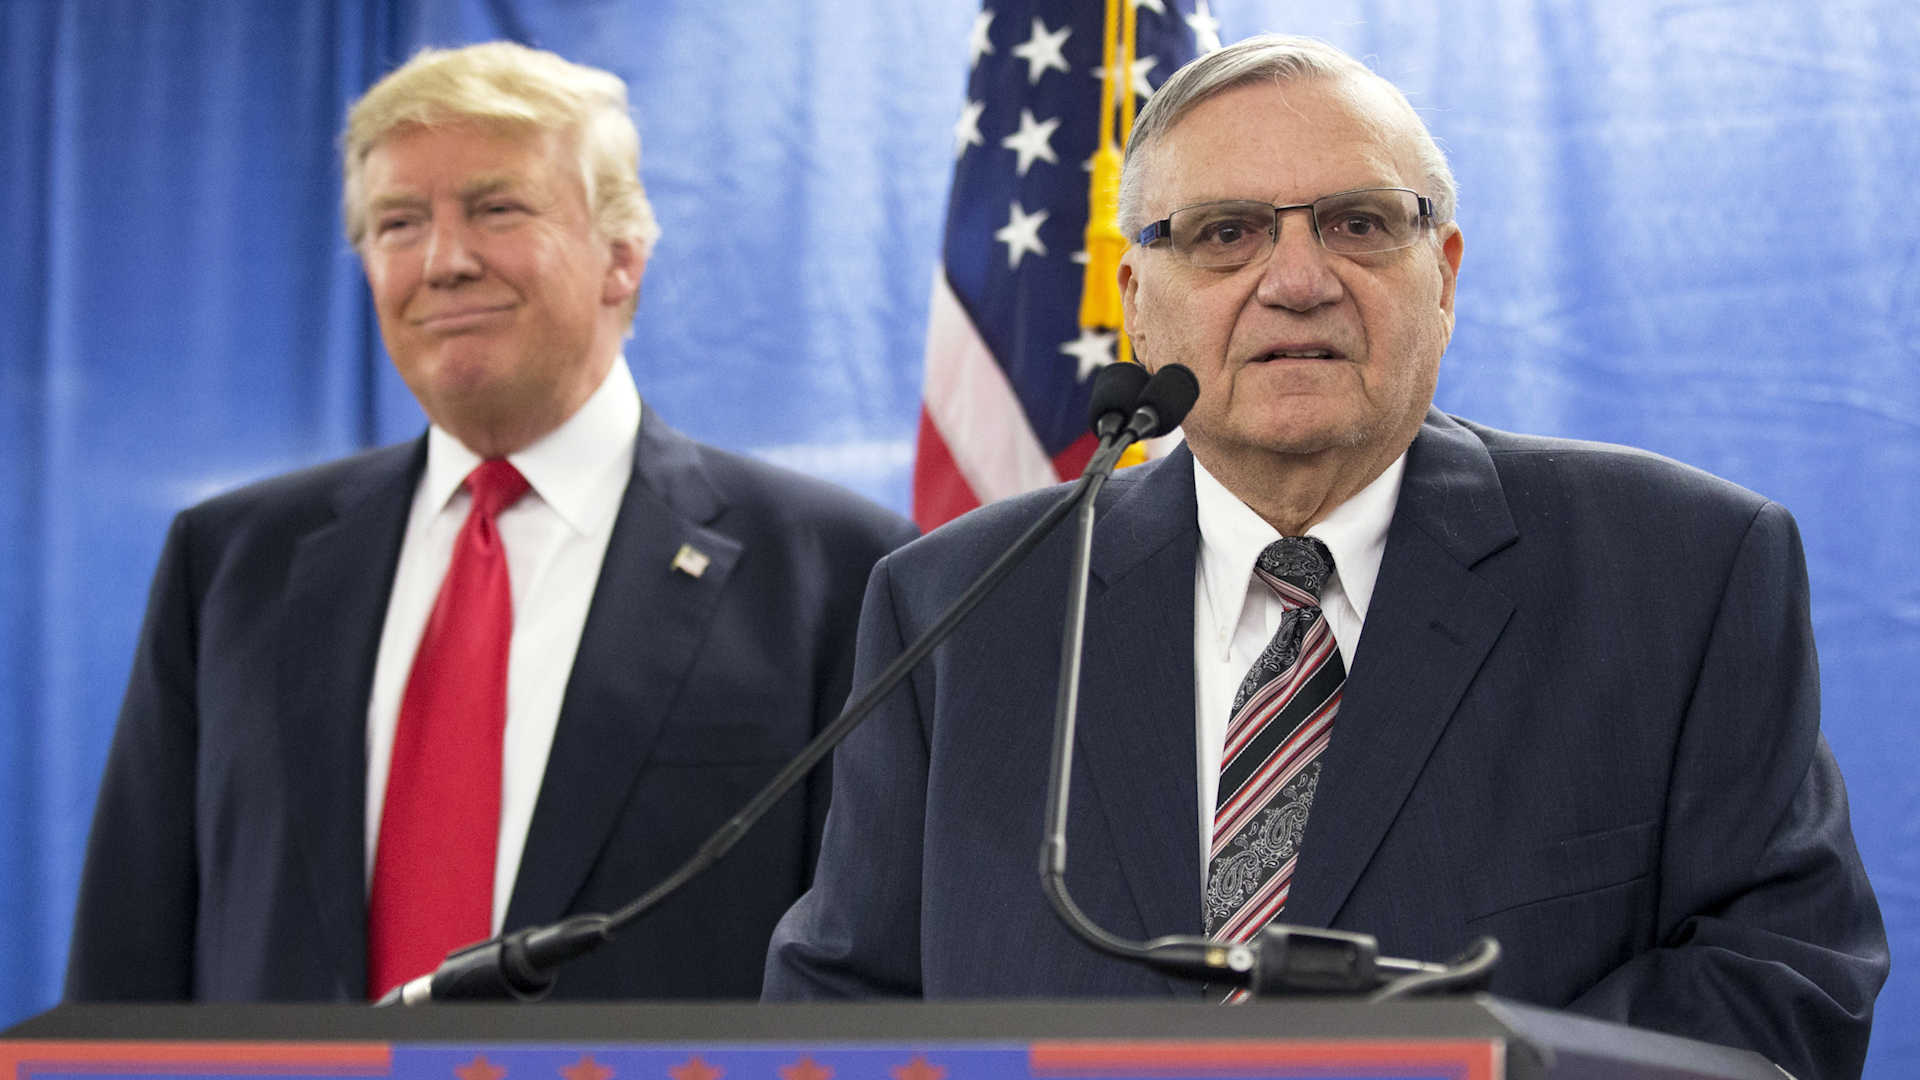 Trump asked Sessions about closing case against Arpaio, an ally since 'birtherism'